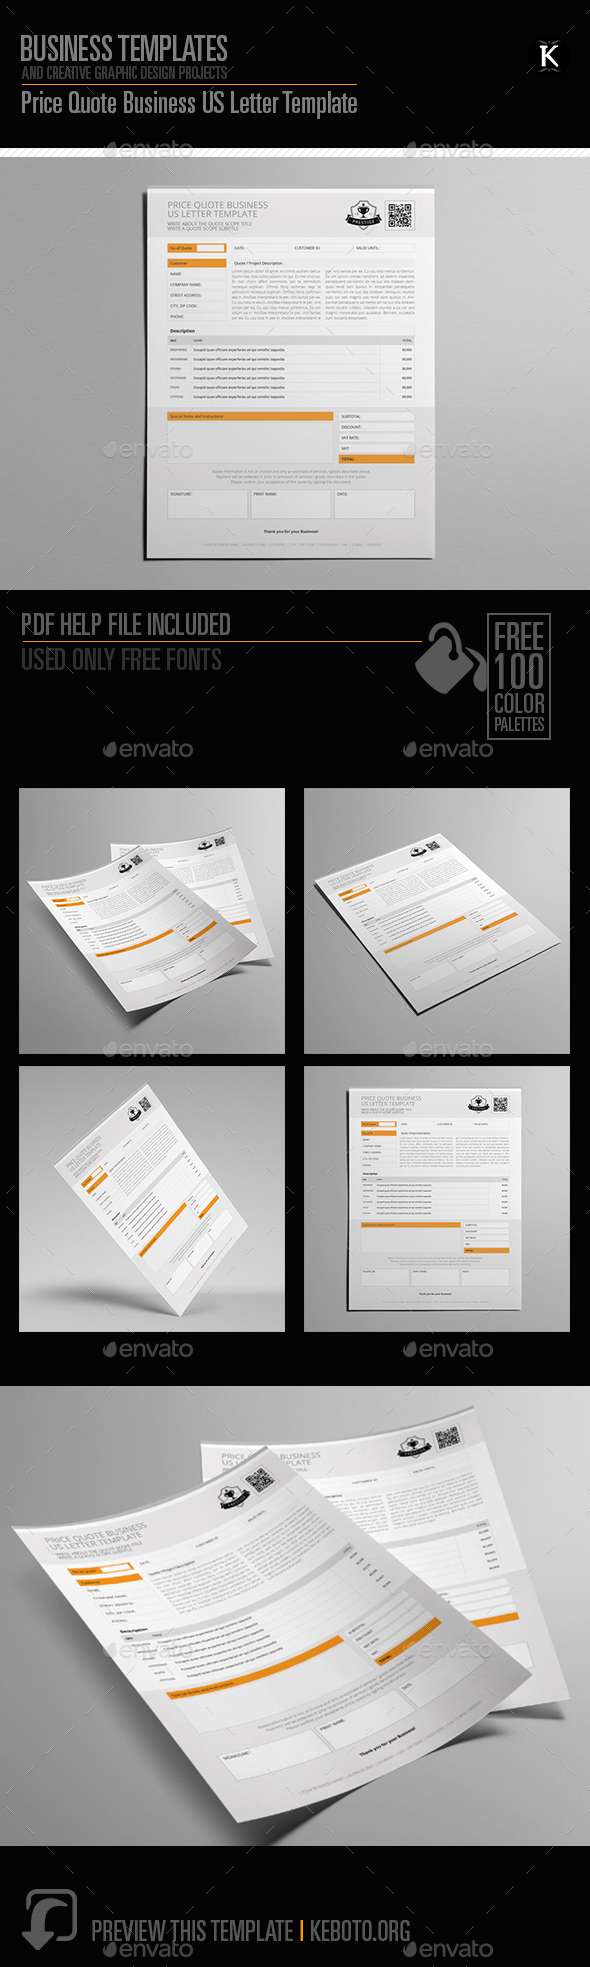 GraphicRiver Price Quote Business US Letter Template 20556304